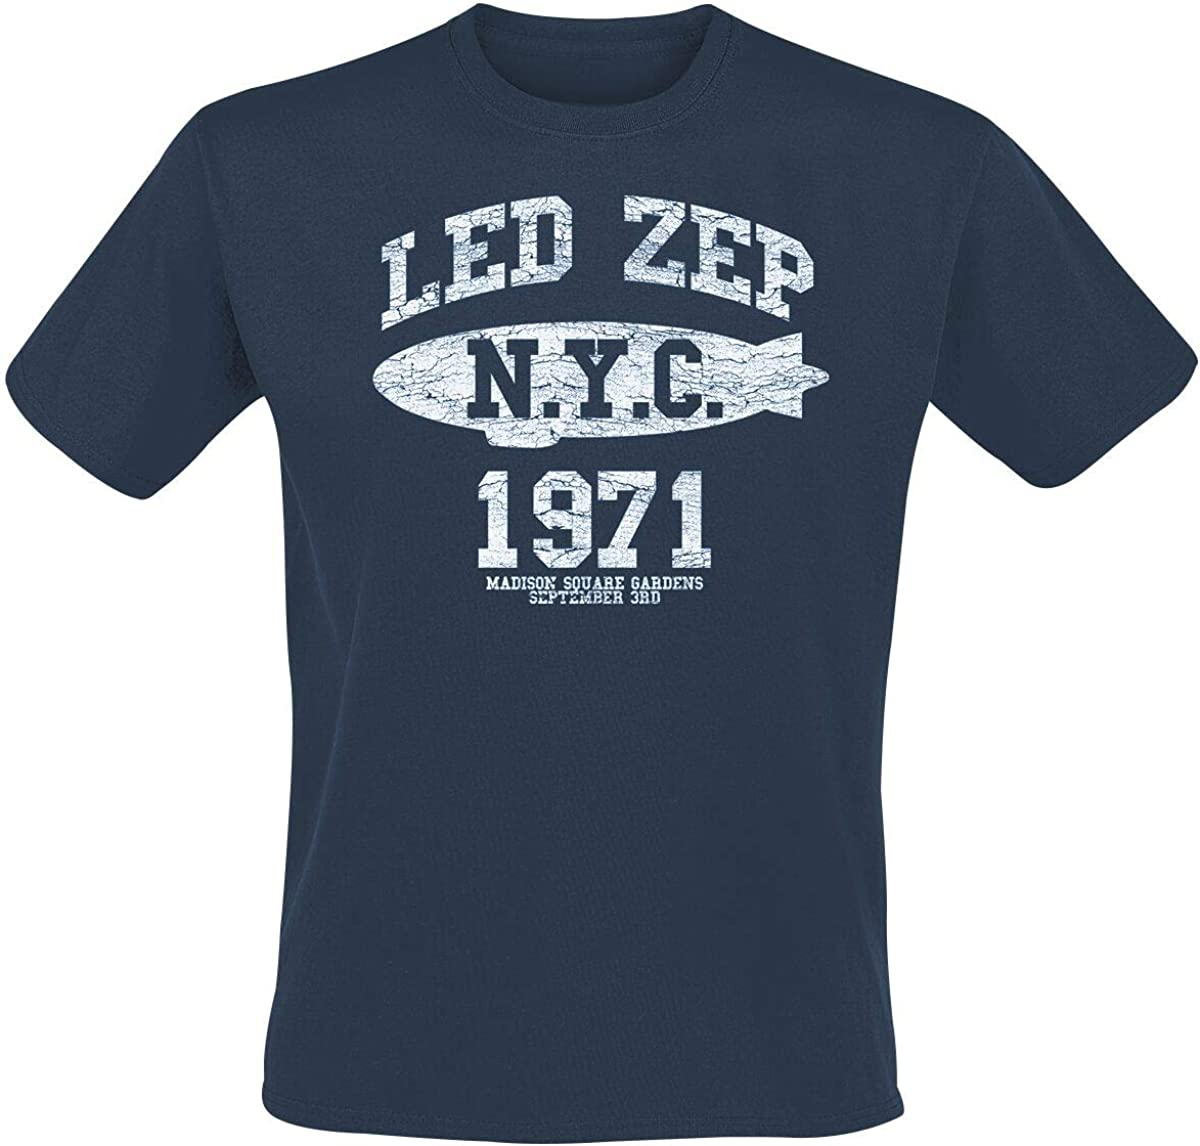 Led Zeppelin NYC 1971 Camiseta Azul: Amazon.es: Ropa y accesorios